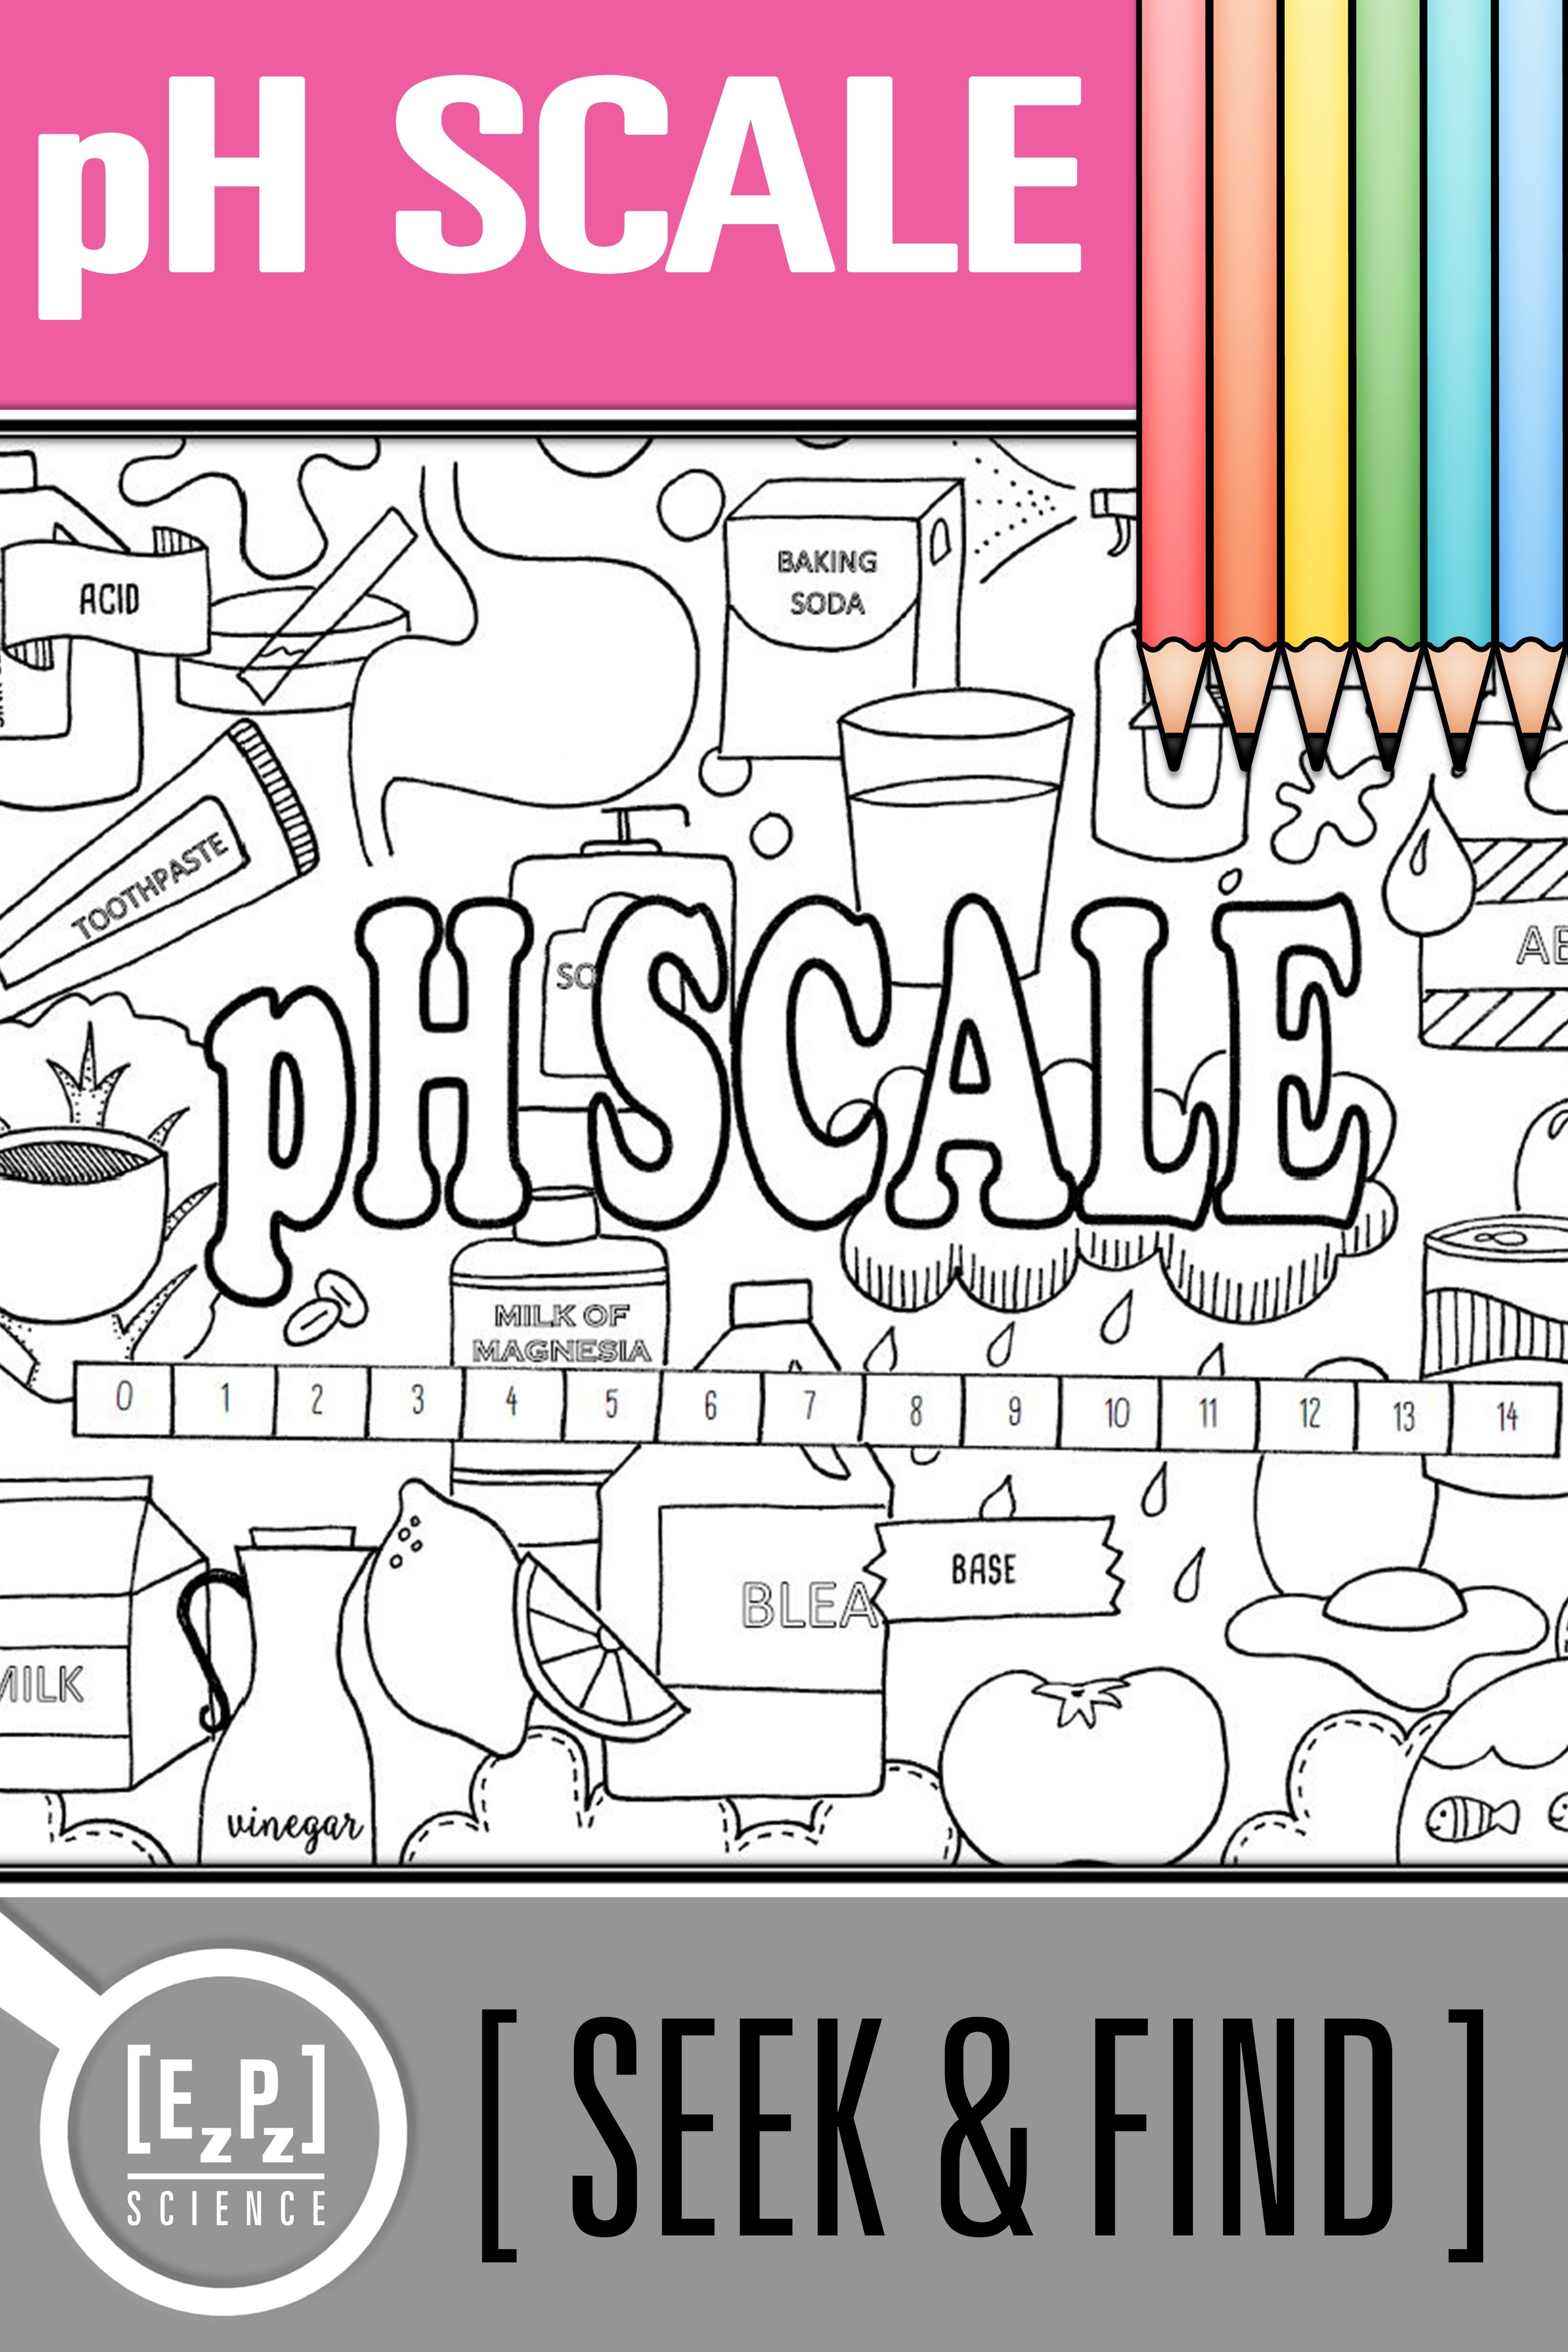 Ph Scale Acids Amp Bases Seek And Find Science Doodle Page